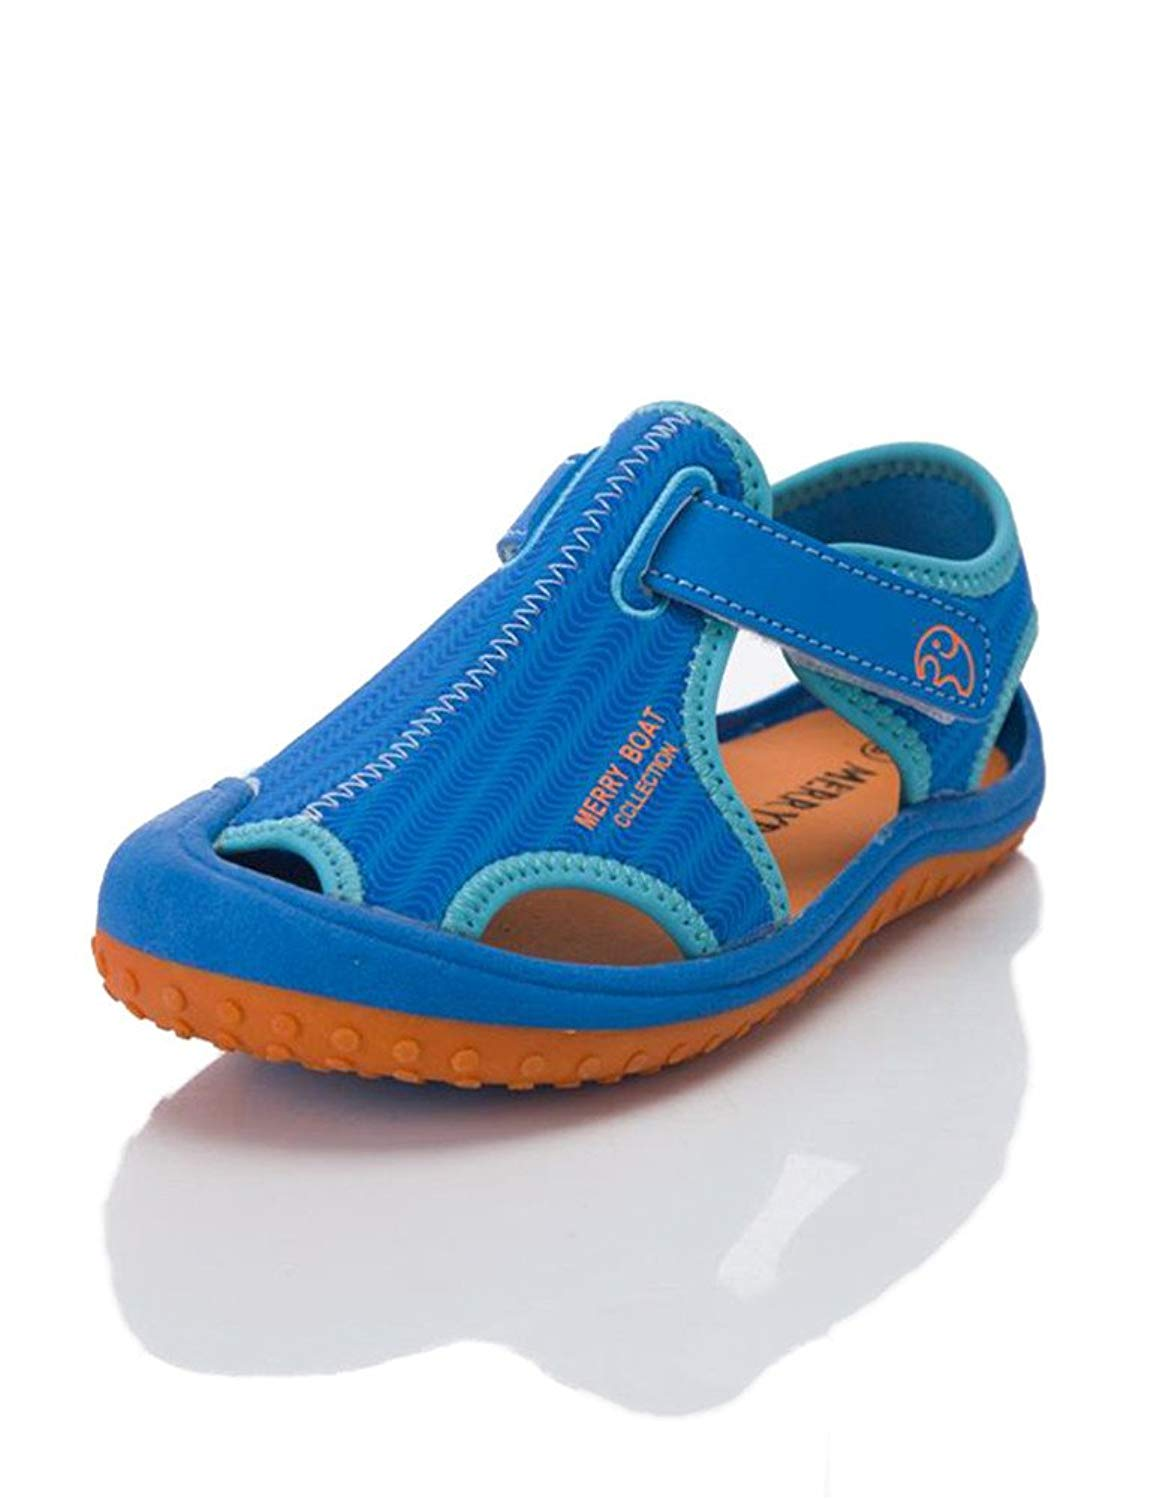 19b04f89ad7b98 HILEELANG Kids Boy Girl Aquatic Water Shoe Closed Toe Sport Beach Sandals  Light Weight (Toddler